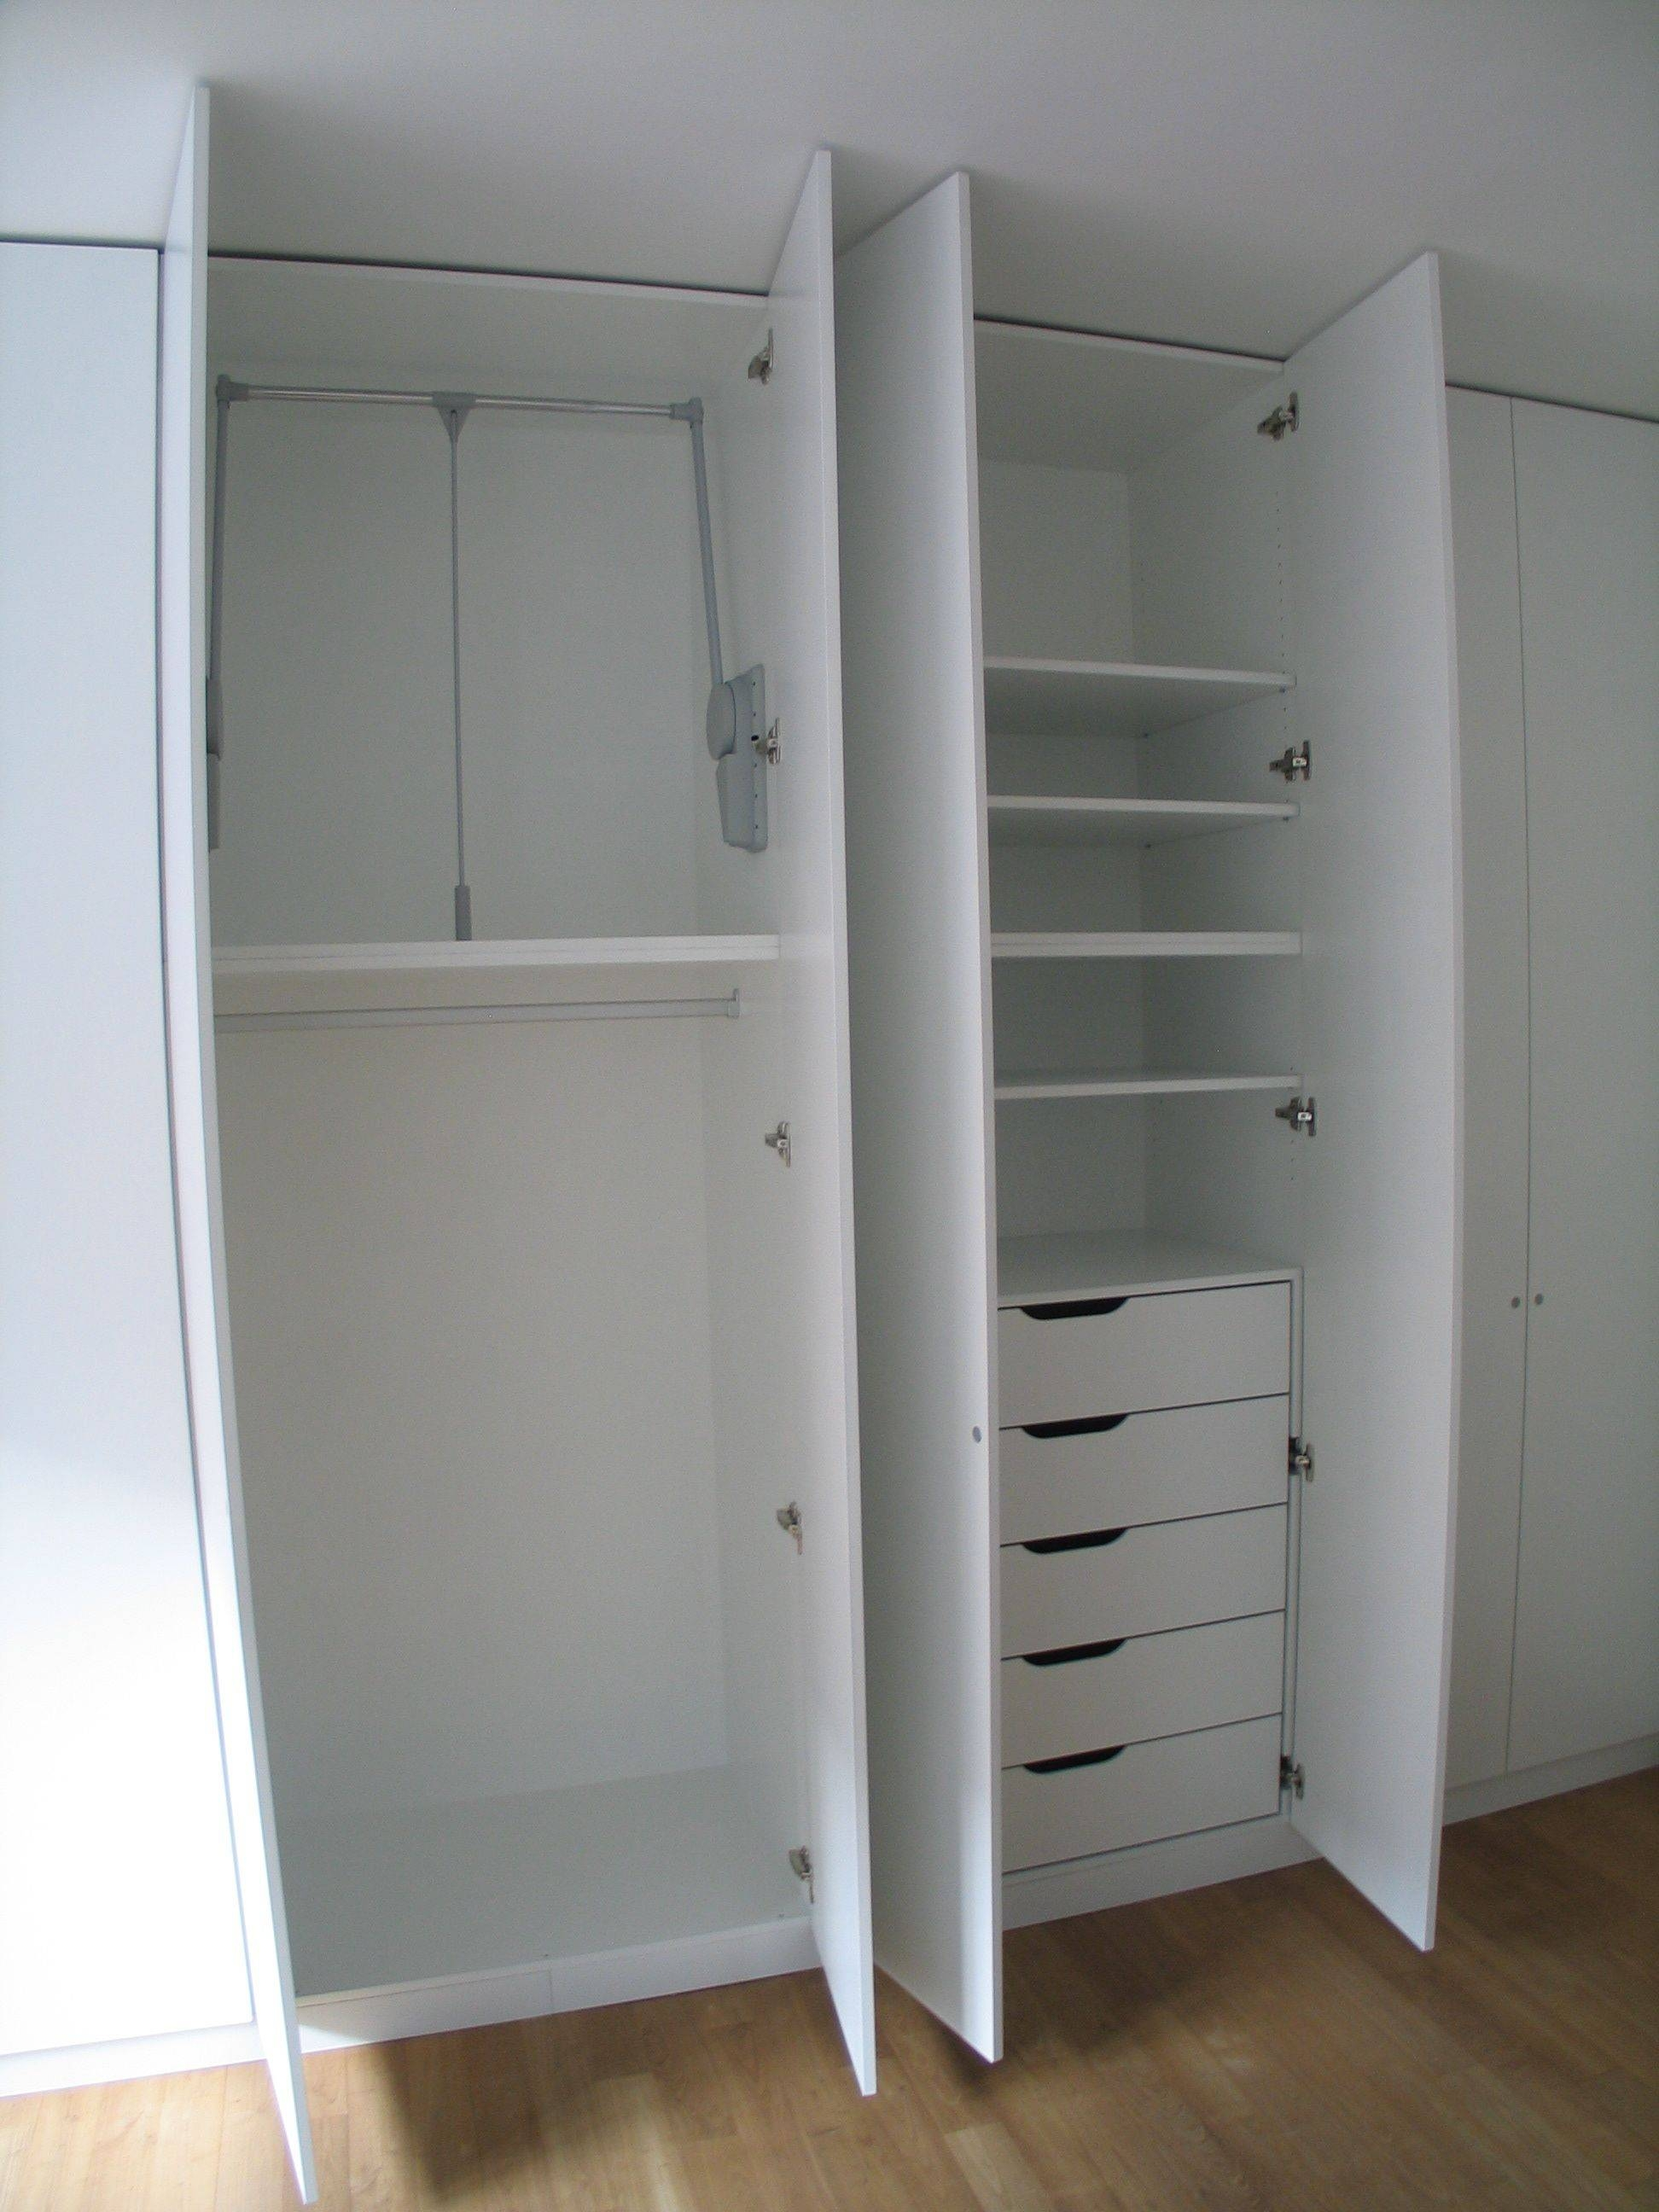 Wardrobe : 31 Marvelous White Wooden Wardrobe Photo Design White for White Wood Wardrobes (Image 9 of 15)